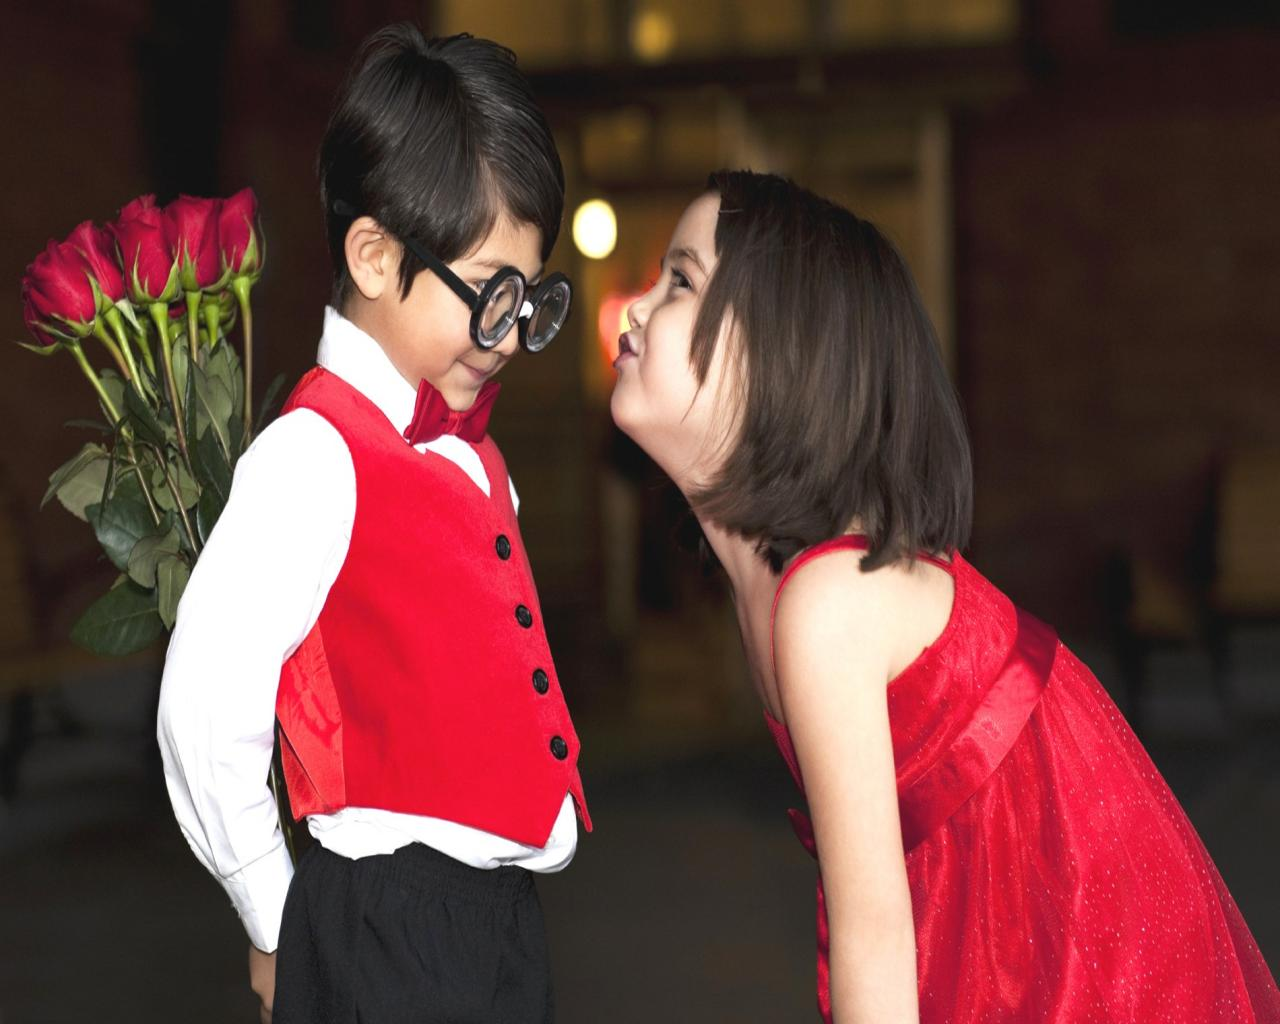 Cute Baby Couple Wallpapers With Quotes Download Sweet Baby Couple Wallpaper Gallery